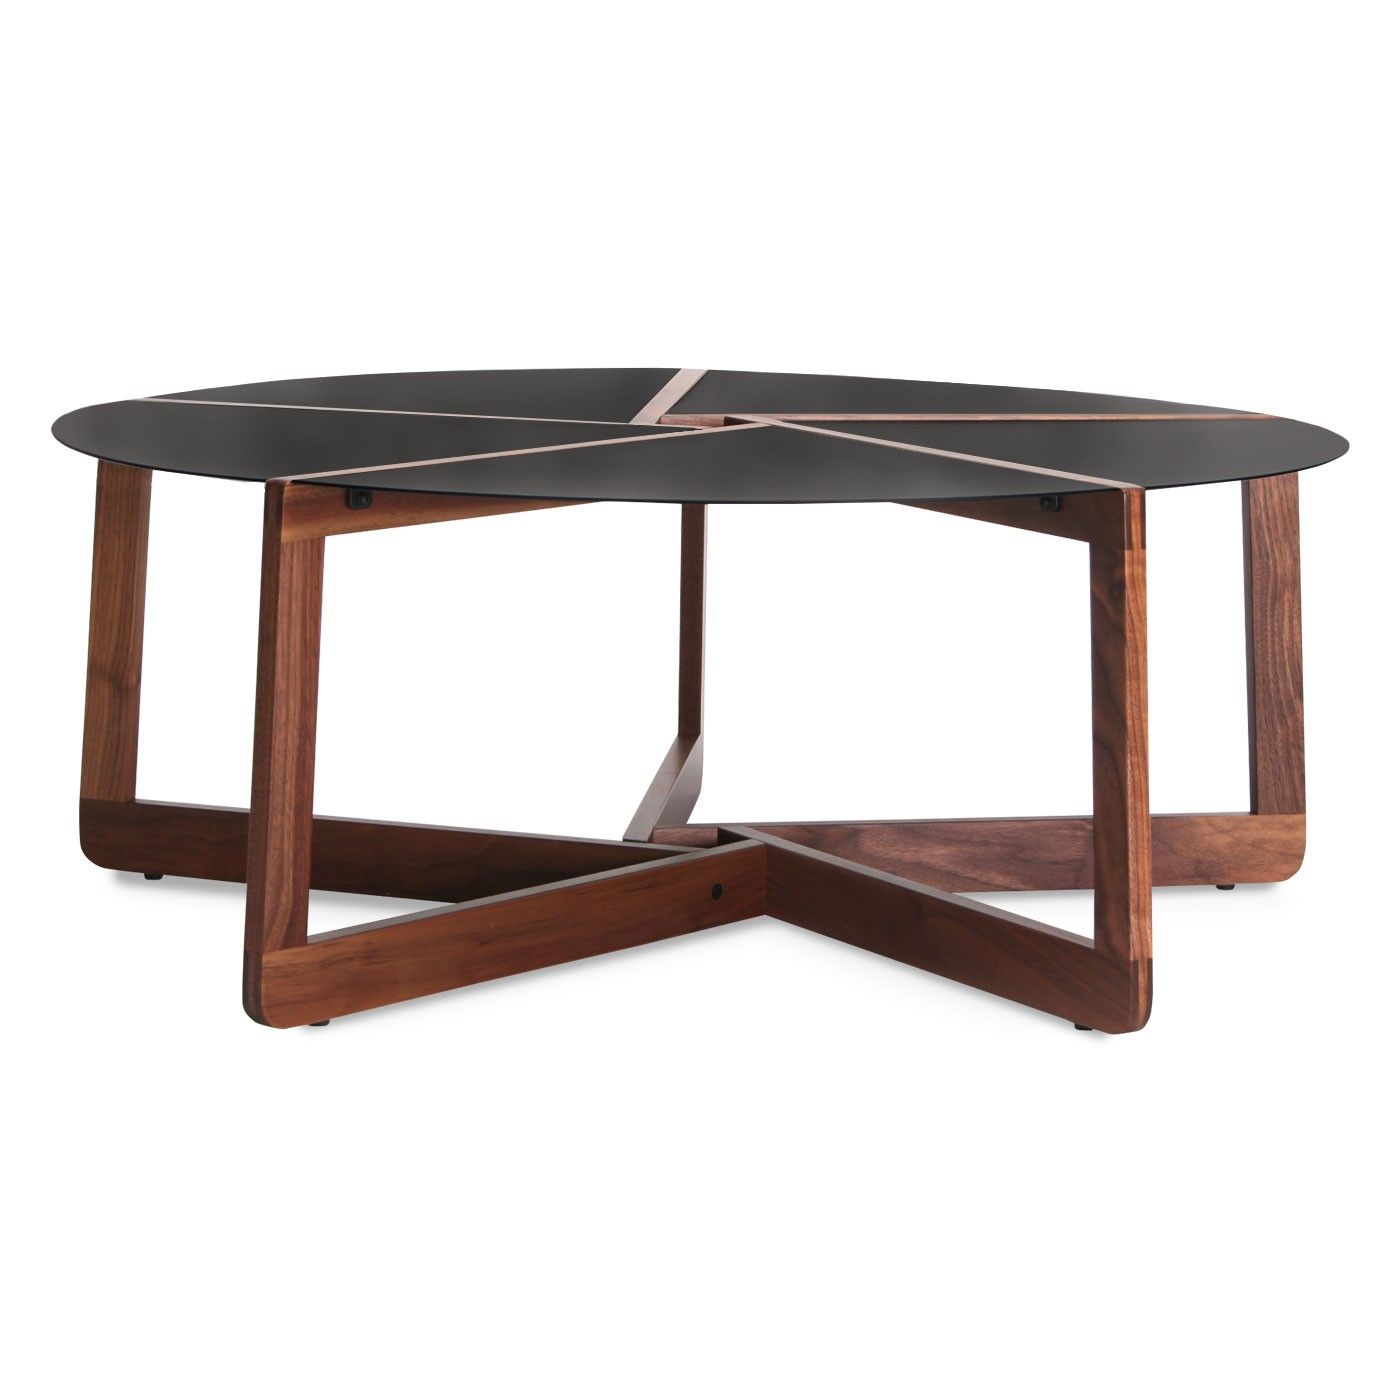 Pi Coffee Table Round Coffee Table Modern Coffee Table Square Bamboo Coffee Table